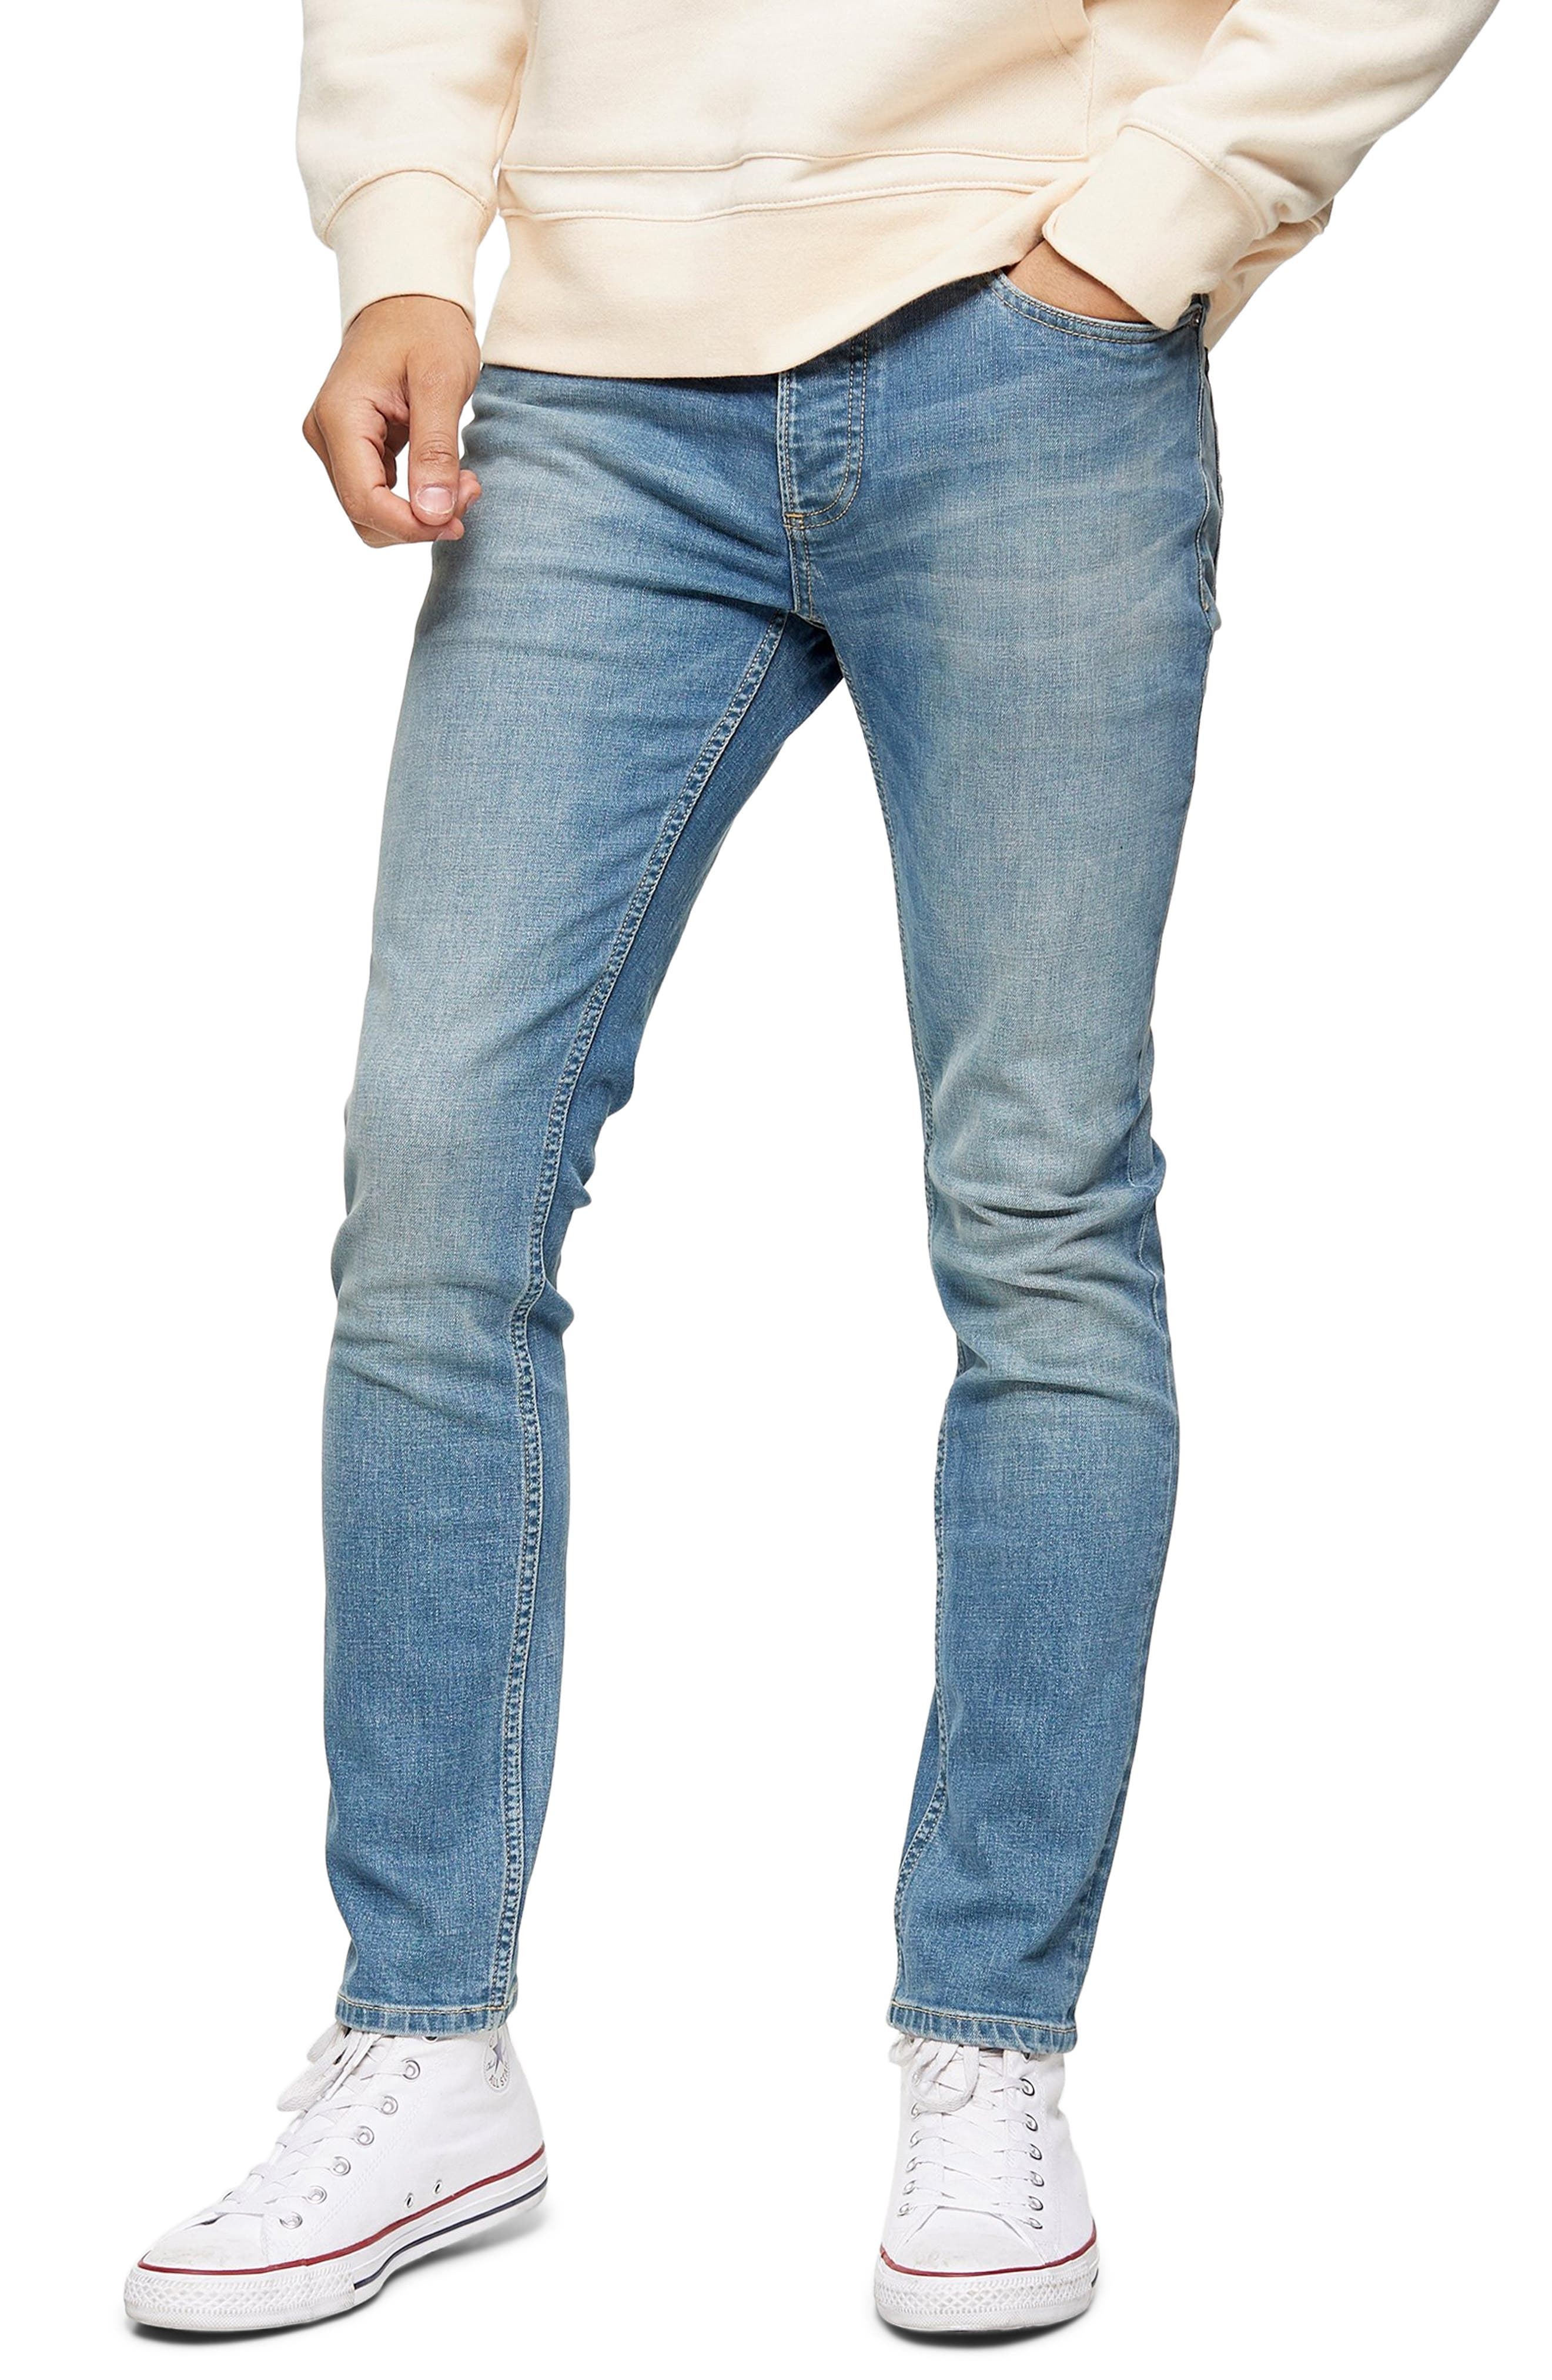 Strategic fading adds plenty of worn-in appeal to stretch-denim skinny jeans that are must-haves for any day of the week. Style Name: Topman Skinny Fit Jeans. Style Number: 6049546. Available in stores.